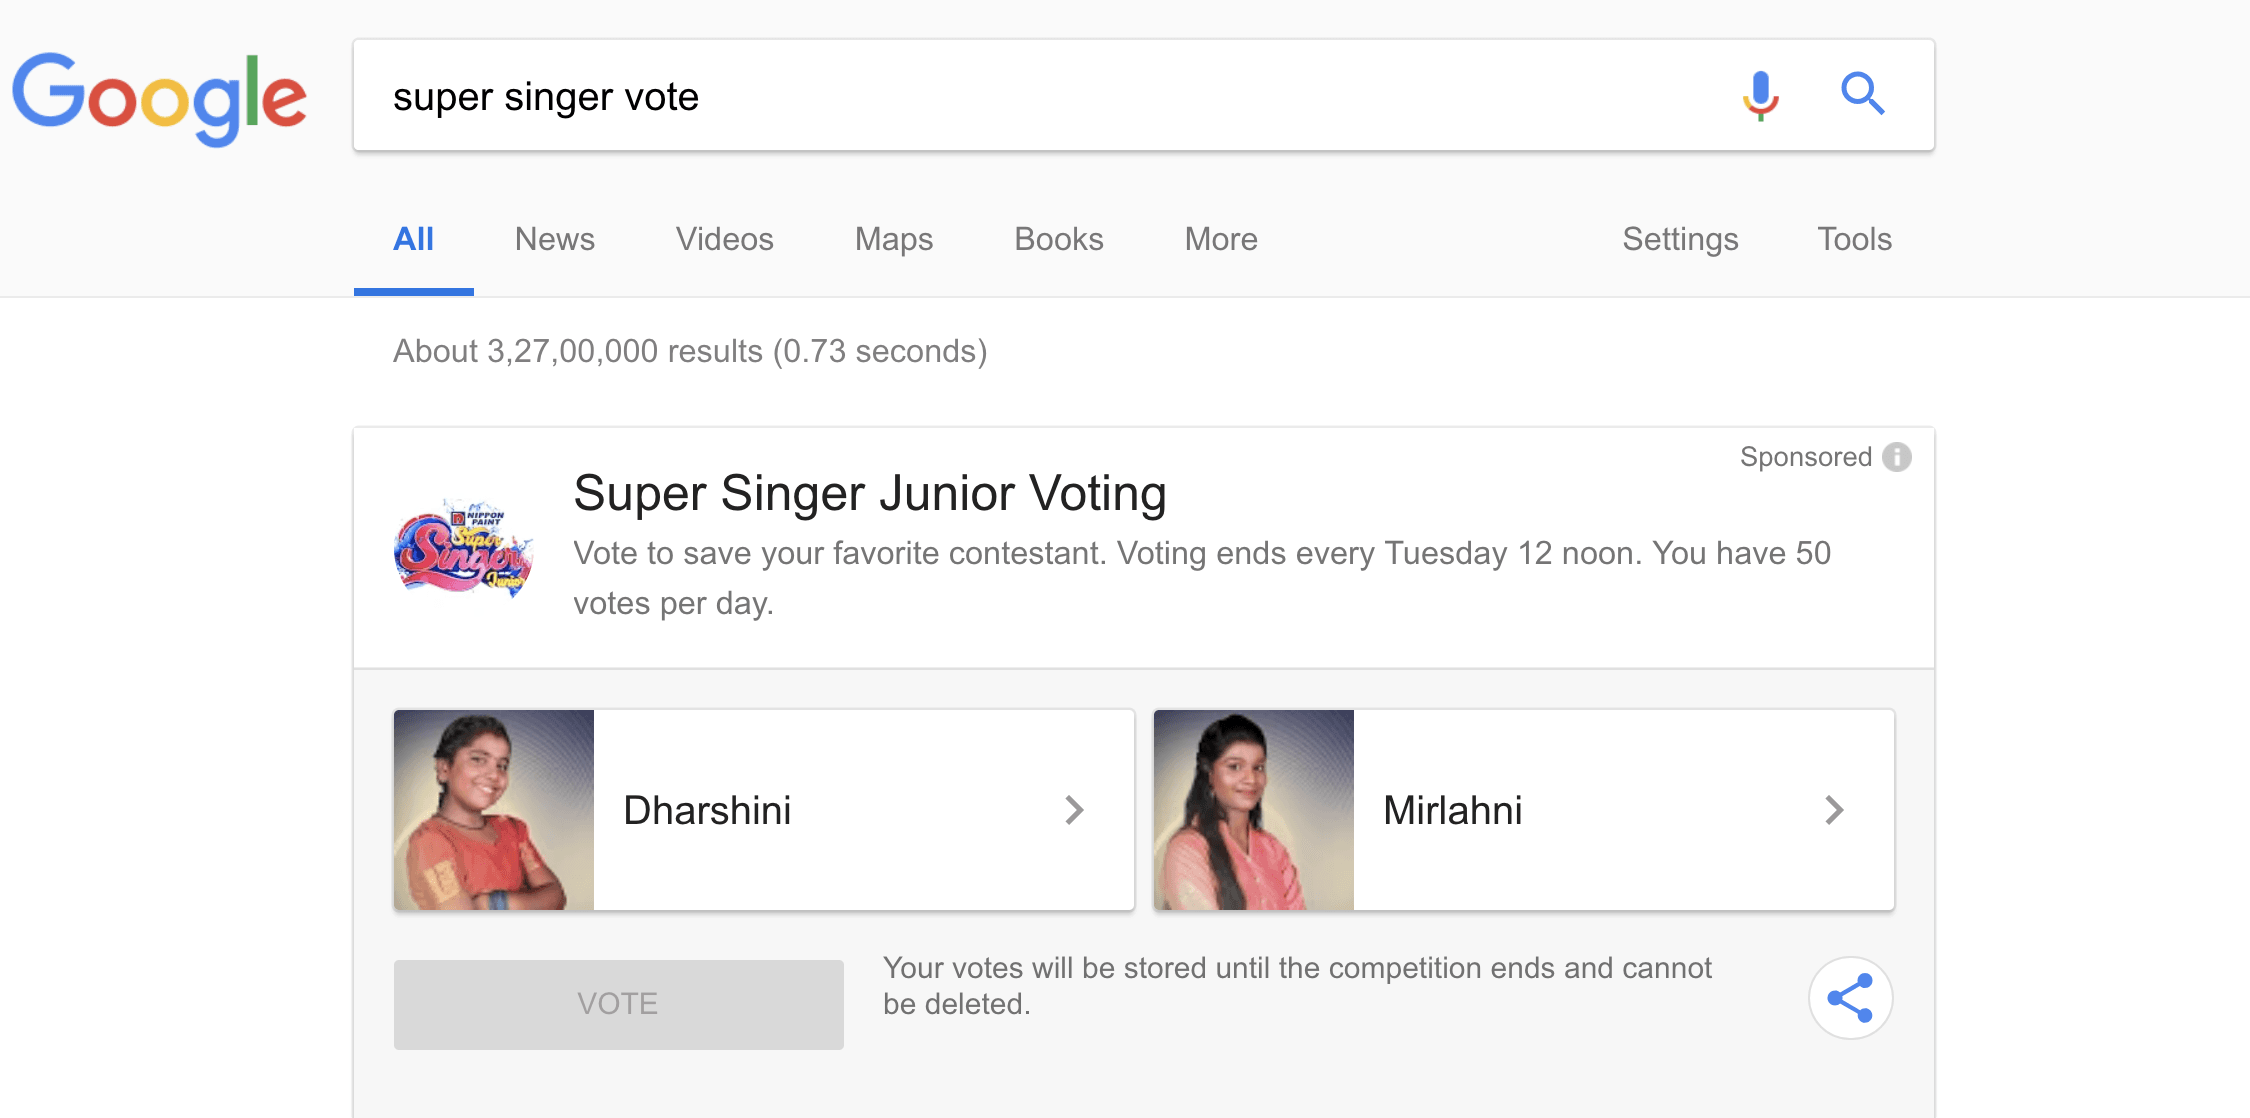 Super Singer Vote